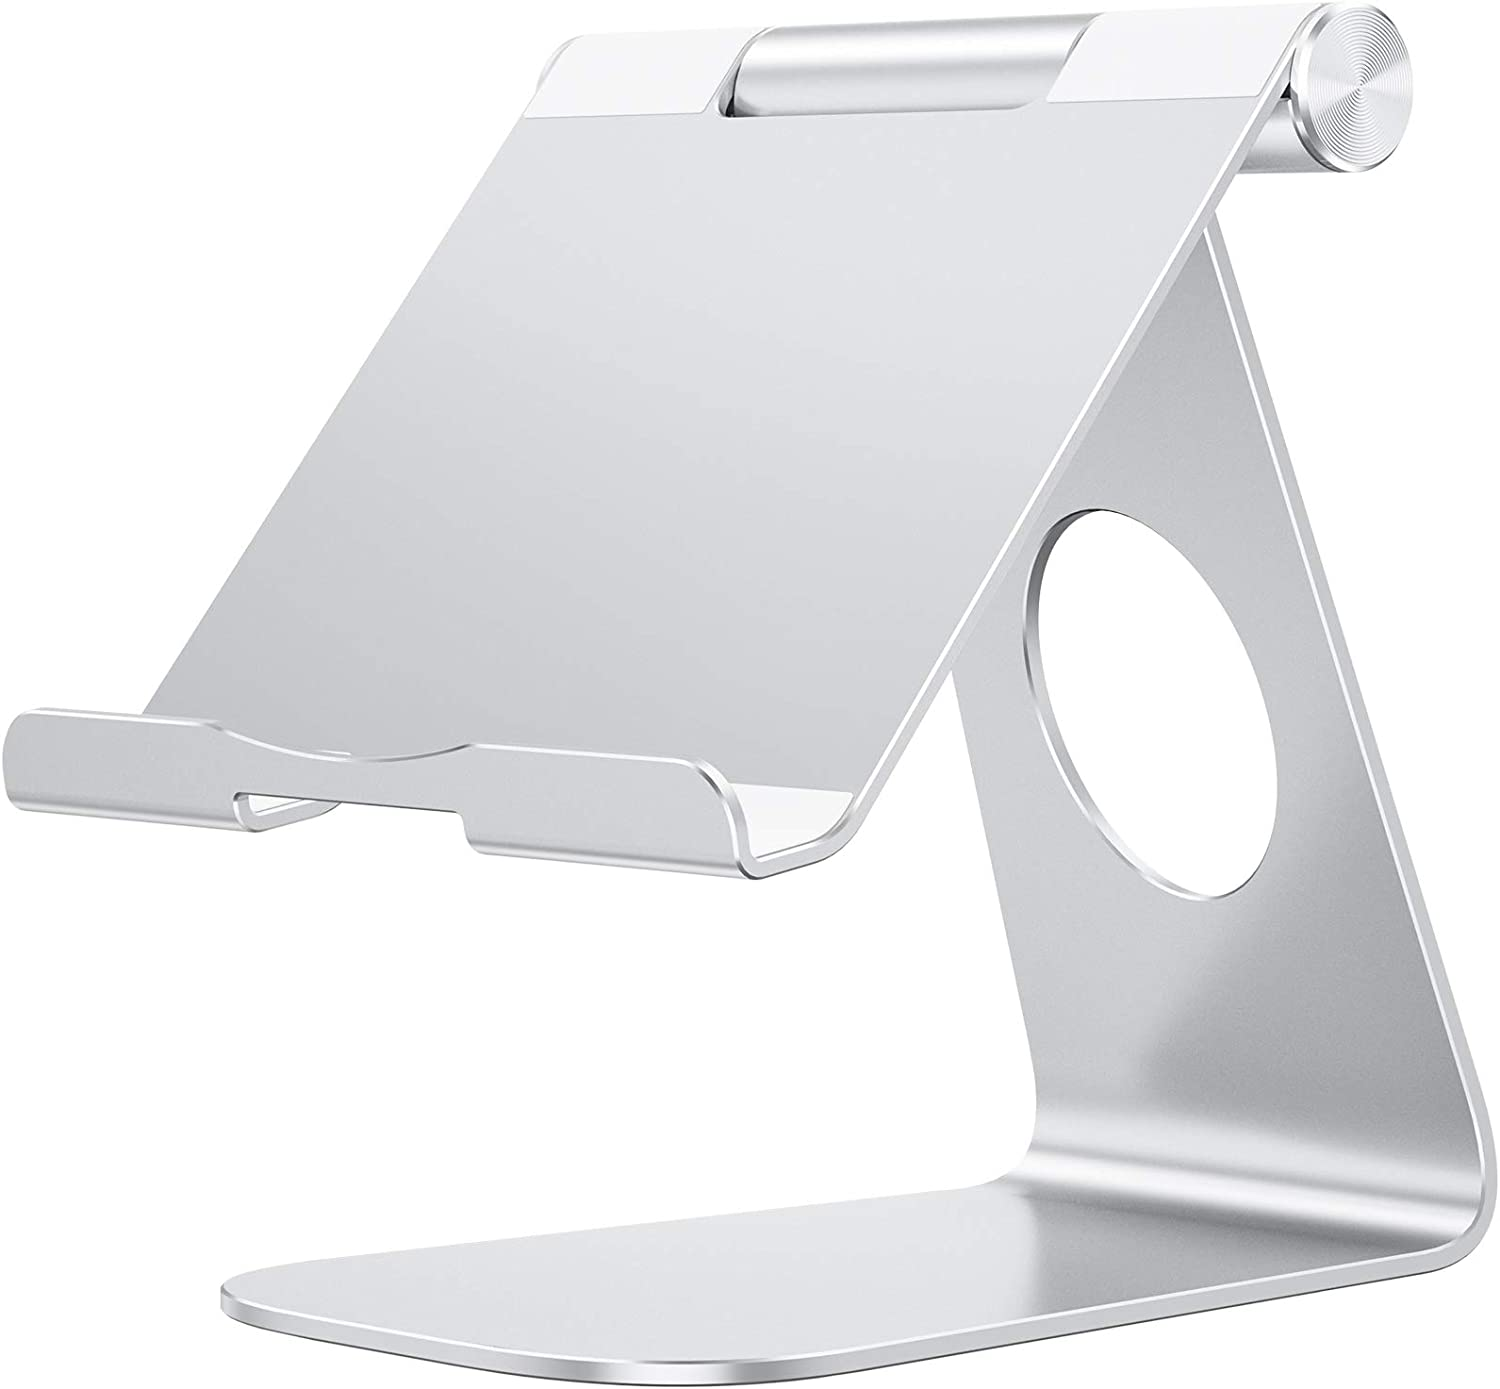 Tablet Stand Holder Adjustable, OMOTON T1 iPad Stand, Desktop Aluminum Tablet Dock Cradle Compatible with iPad Air 4/Mini, New iPad 10.2/9.7, iPad Pro 11/12.9, Samsung, Nintendo and More, Silver: Computers & Accessories